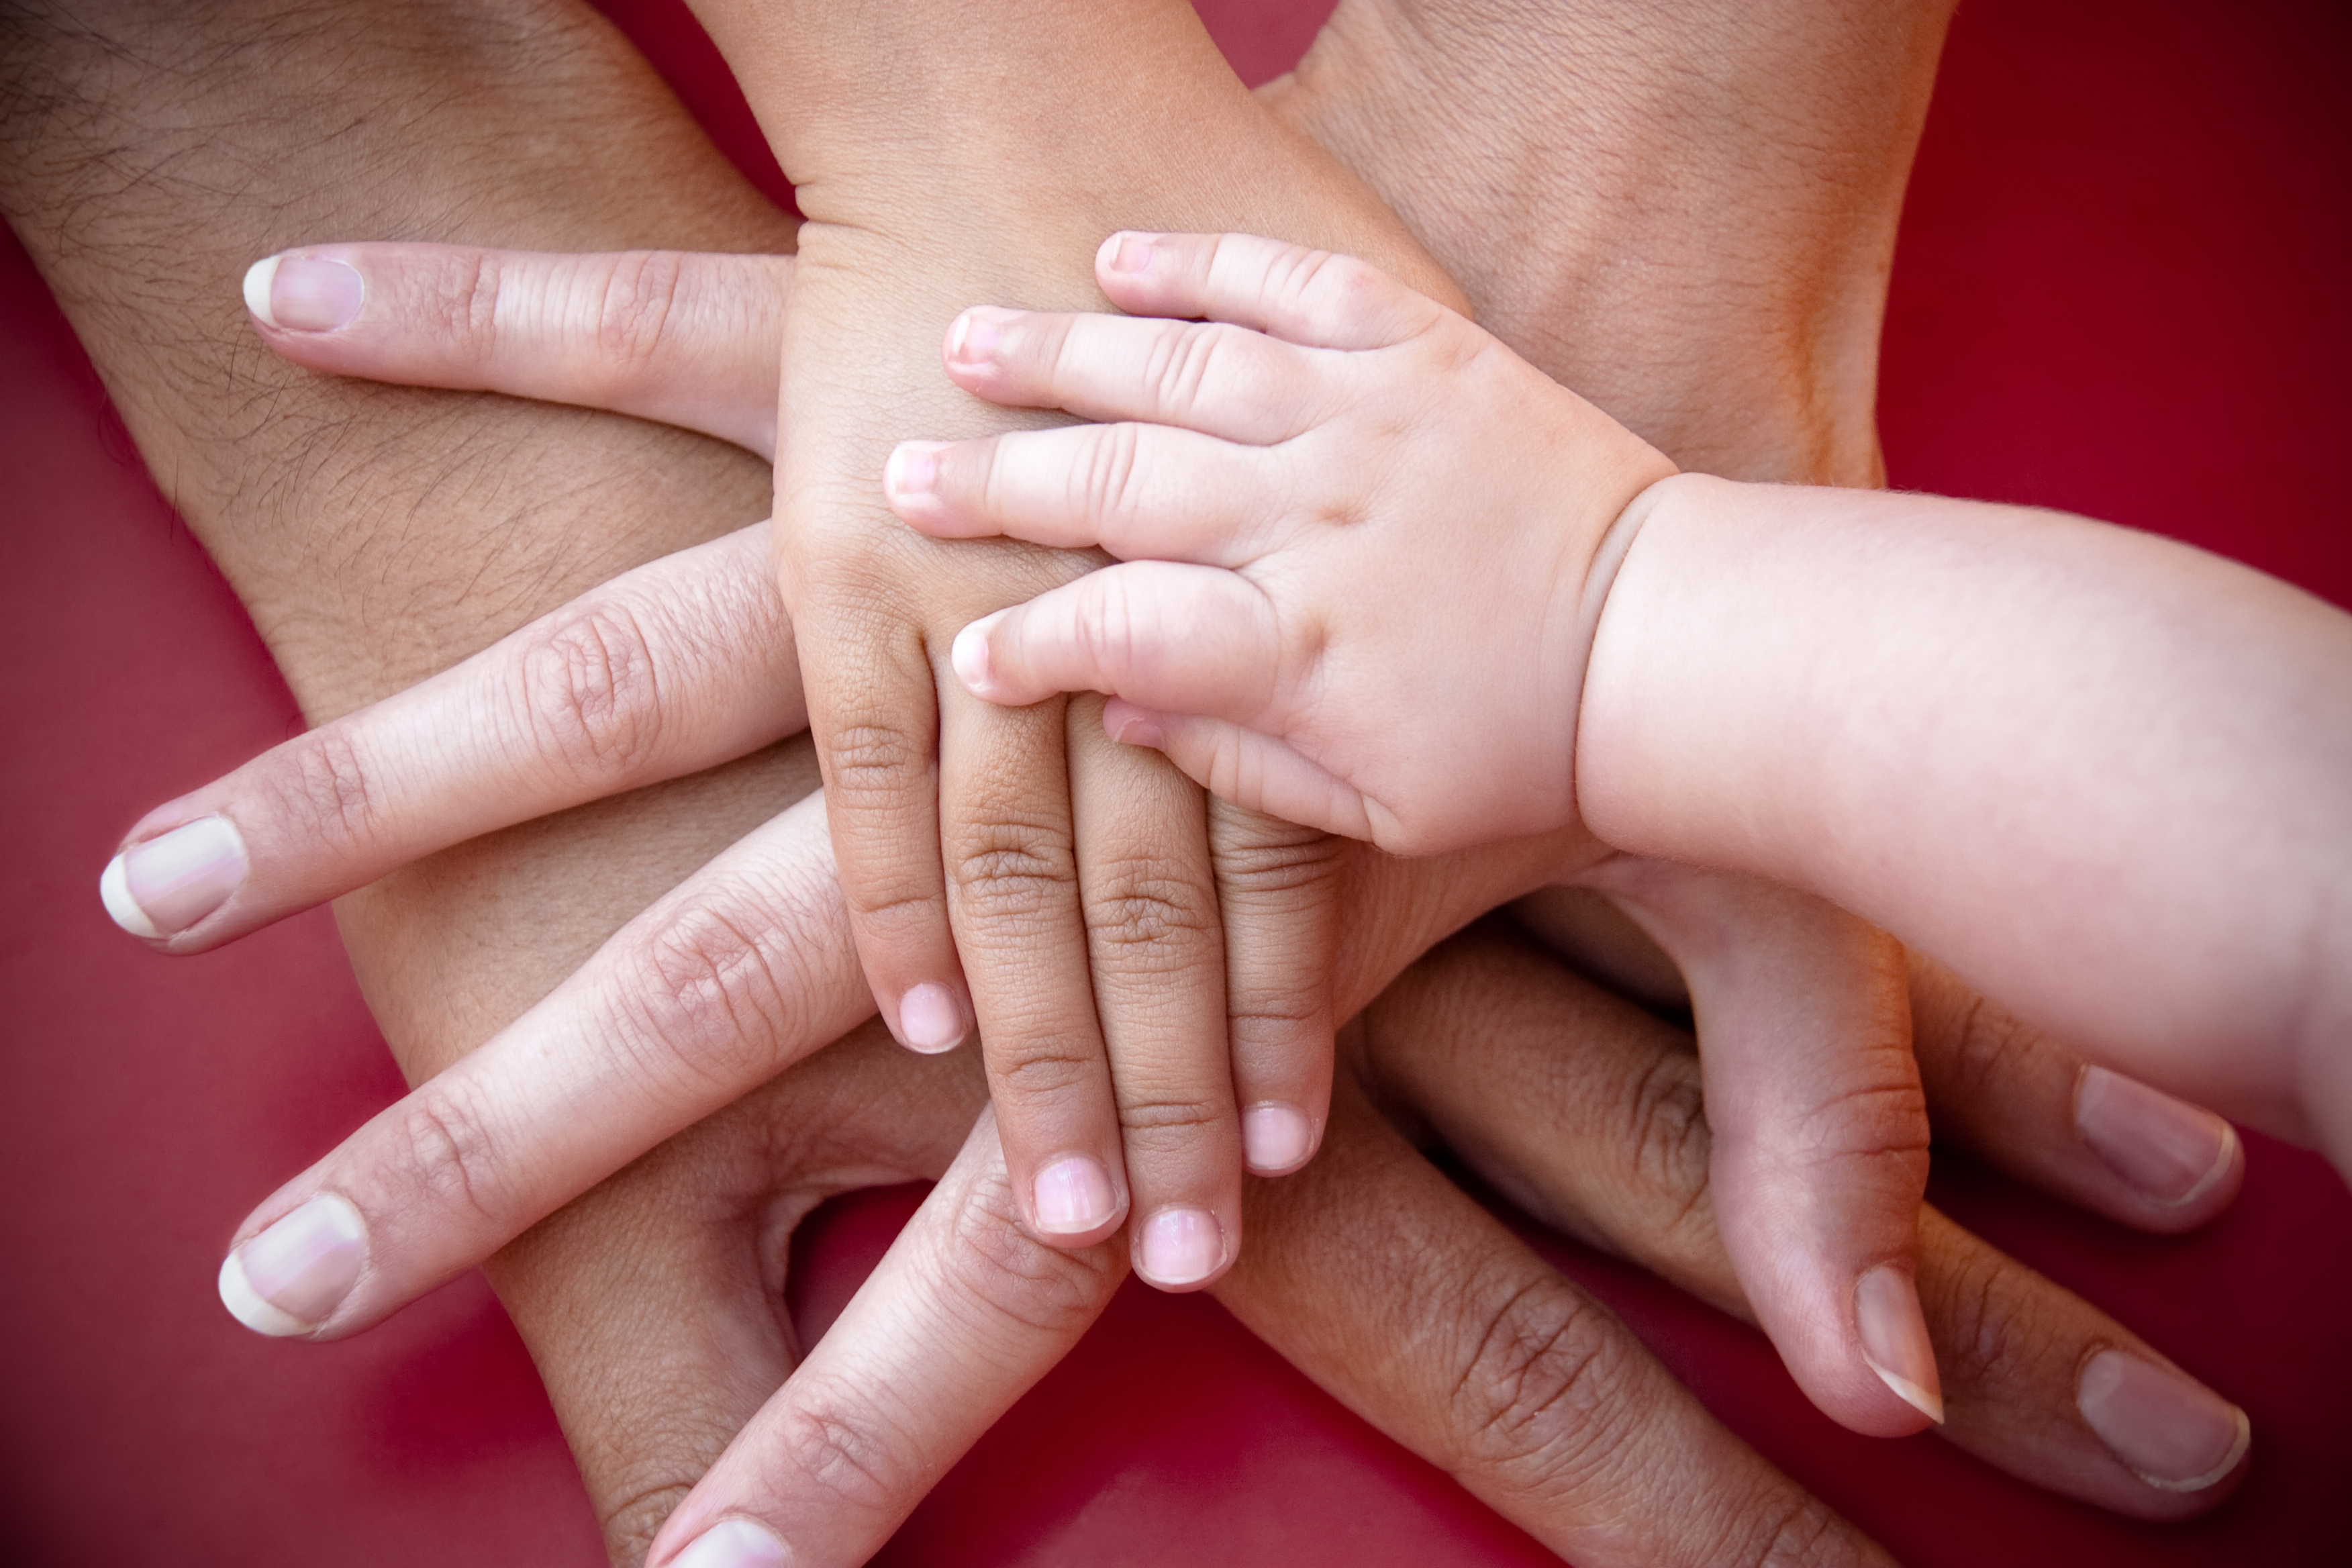 child support and custody